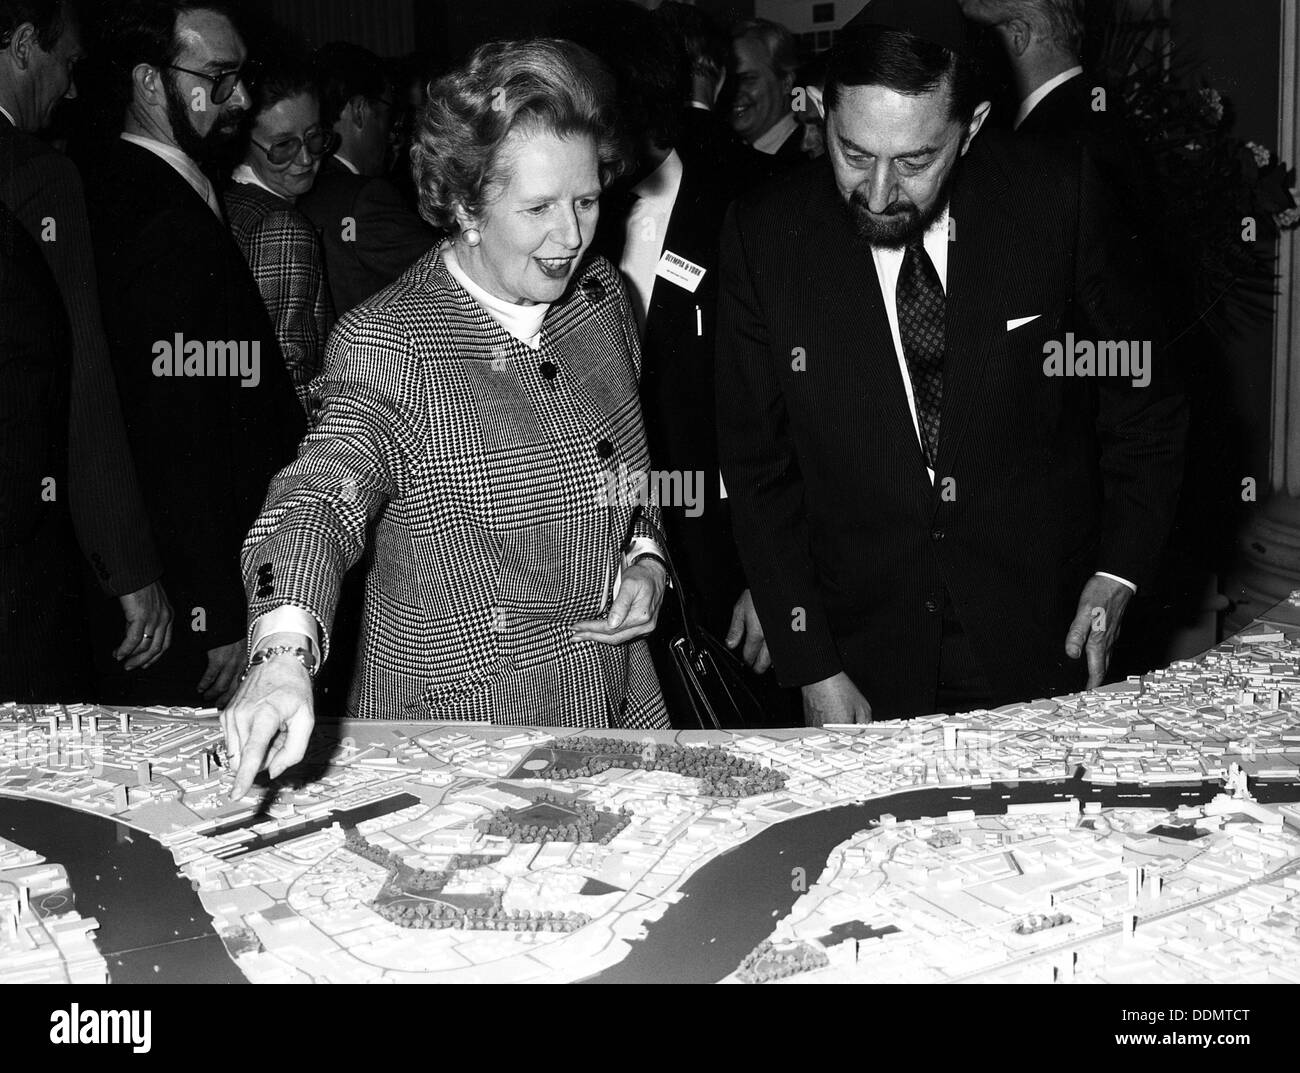 Margaret Thatcher (1925- ), British Prime Minister, viewing the Canary Wharf scheme, 1988. Stock Photo